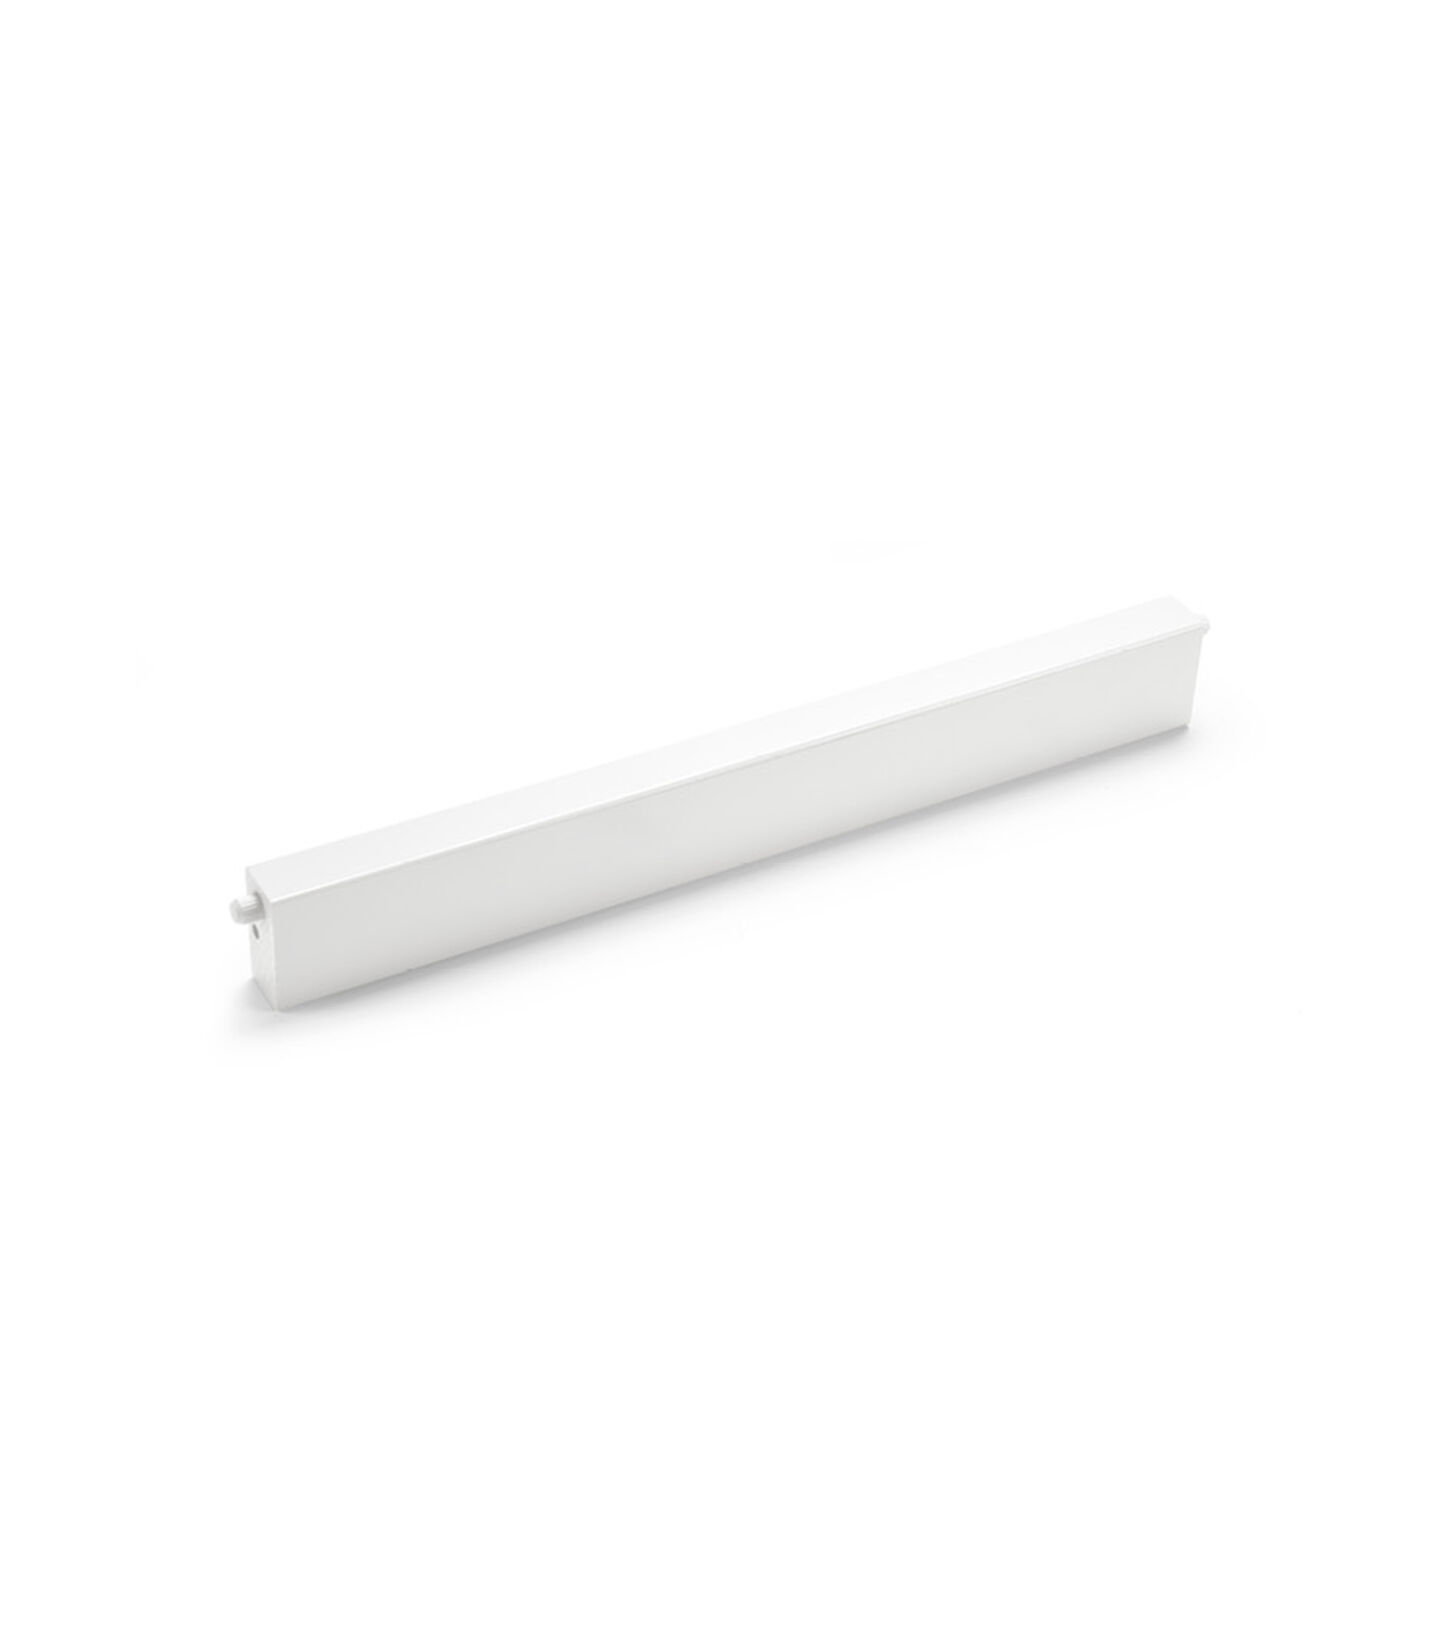 Tripp Trapp® Floorbrace White, White, mainview view 2